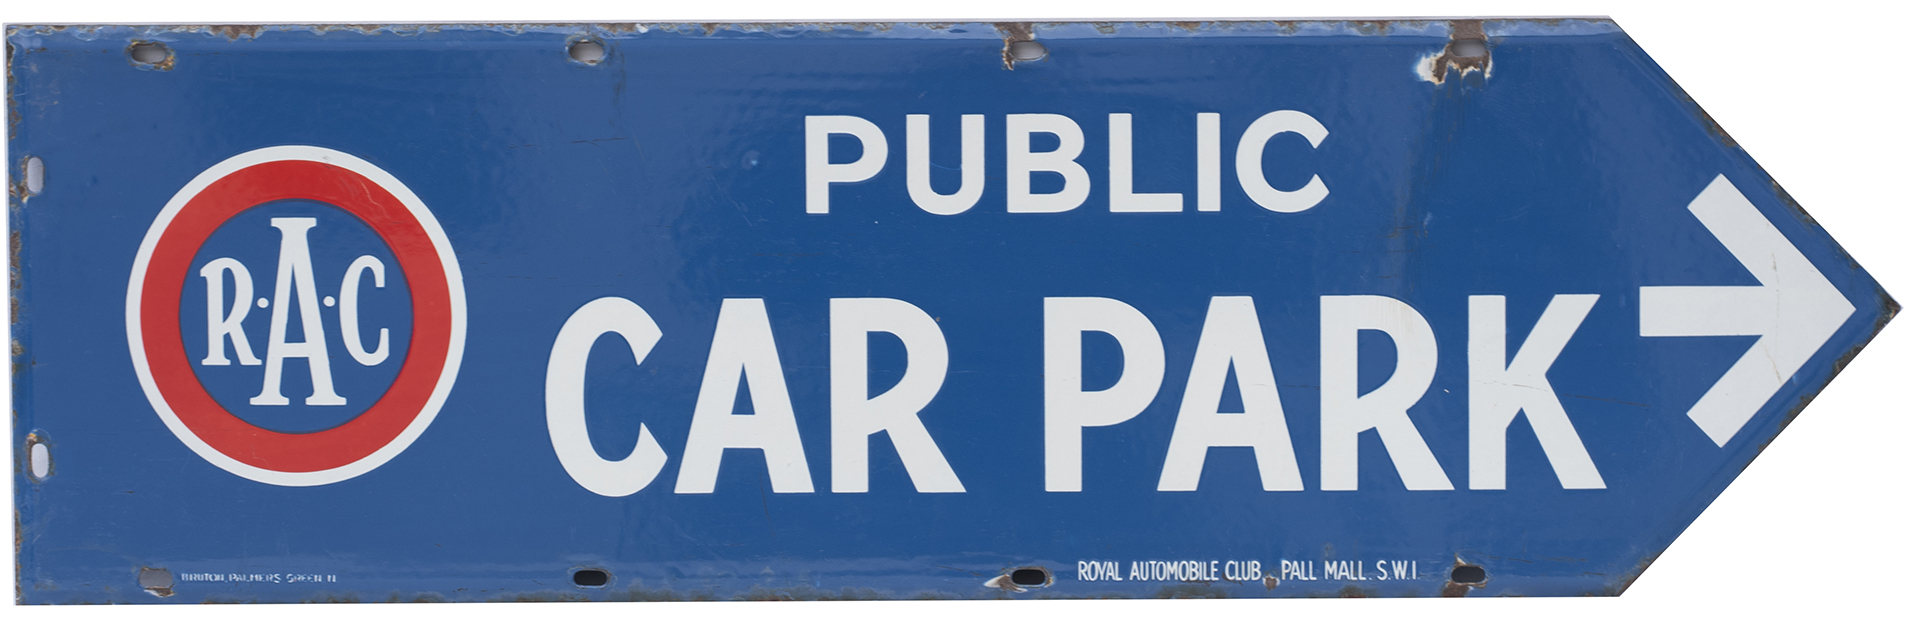 Advertising enamel motoring sign R.A.C PUBLIC CAR PARK circa 1920's. Double sided, both sides in